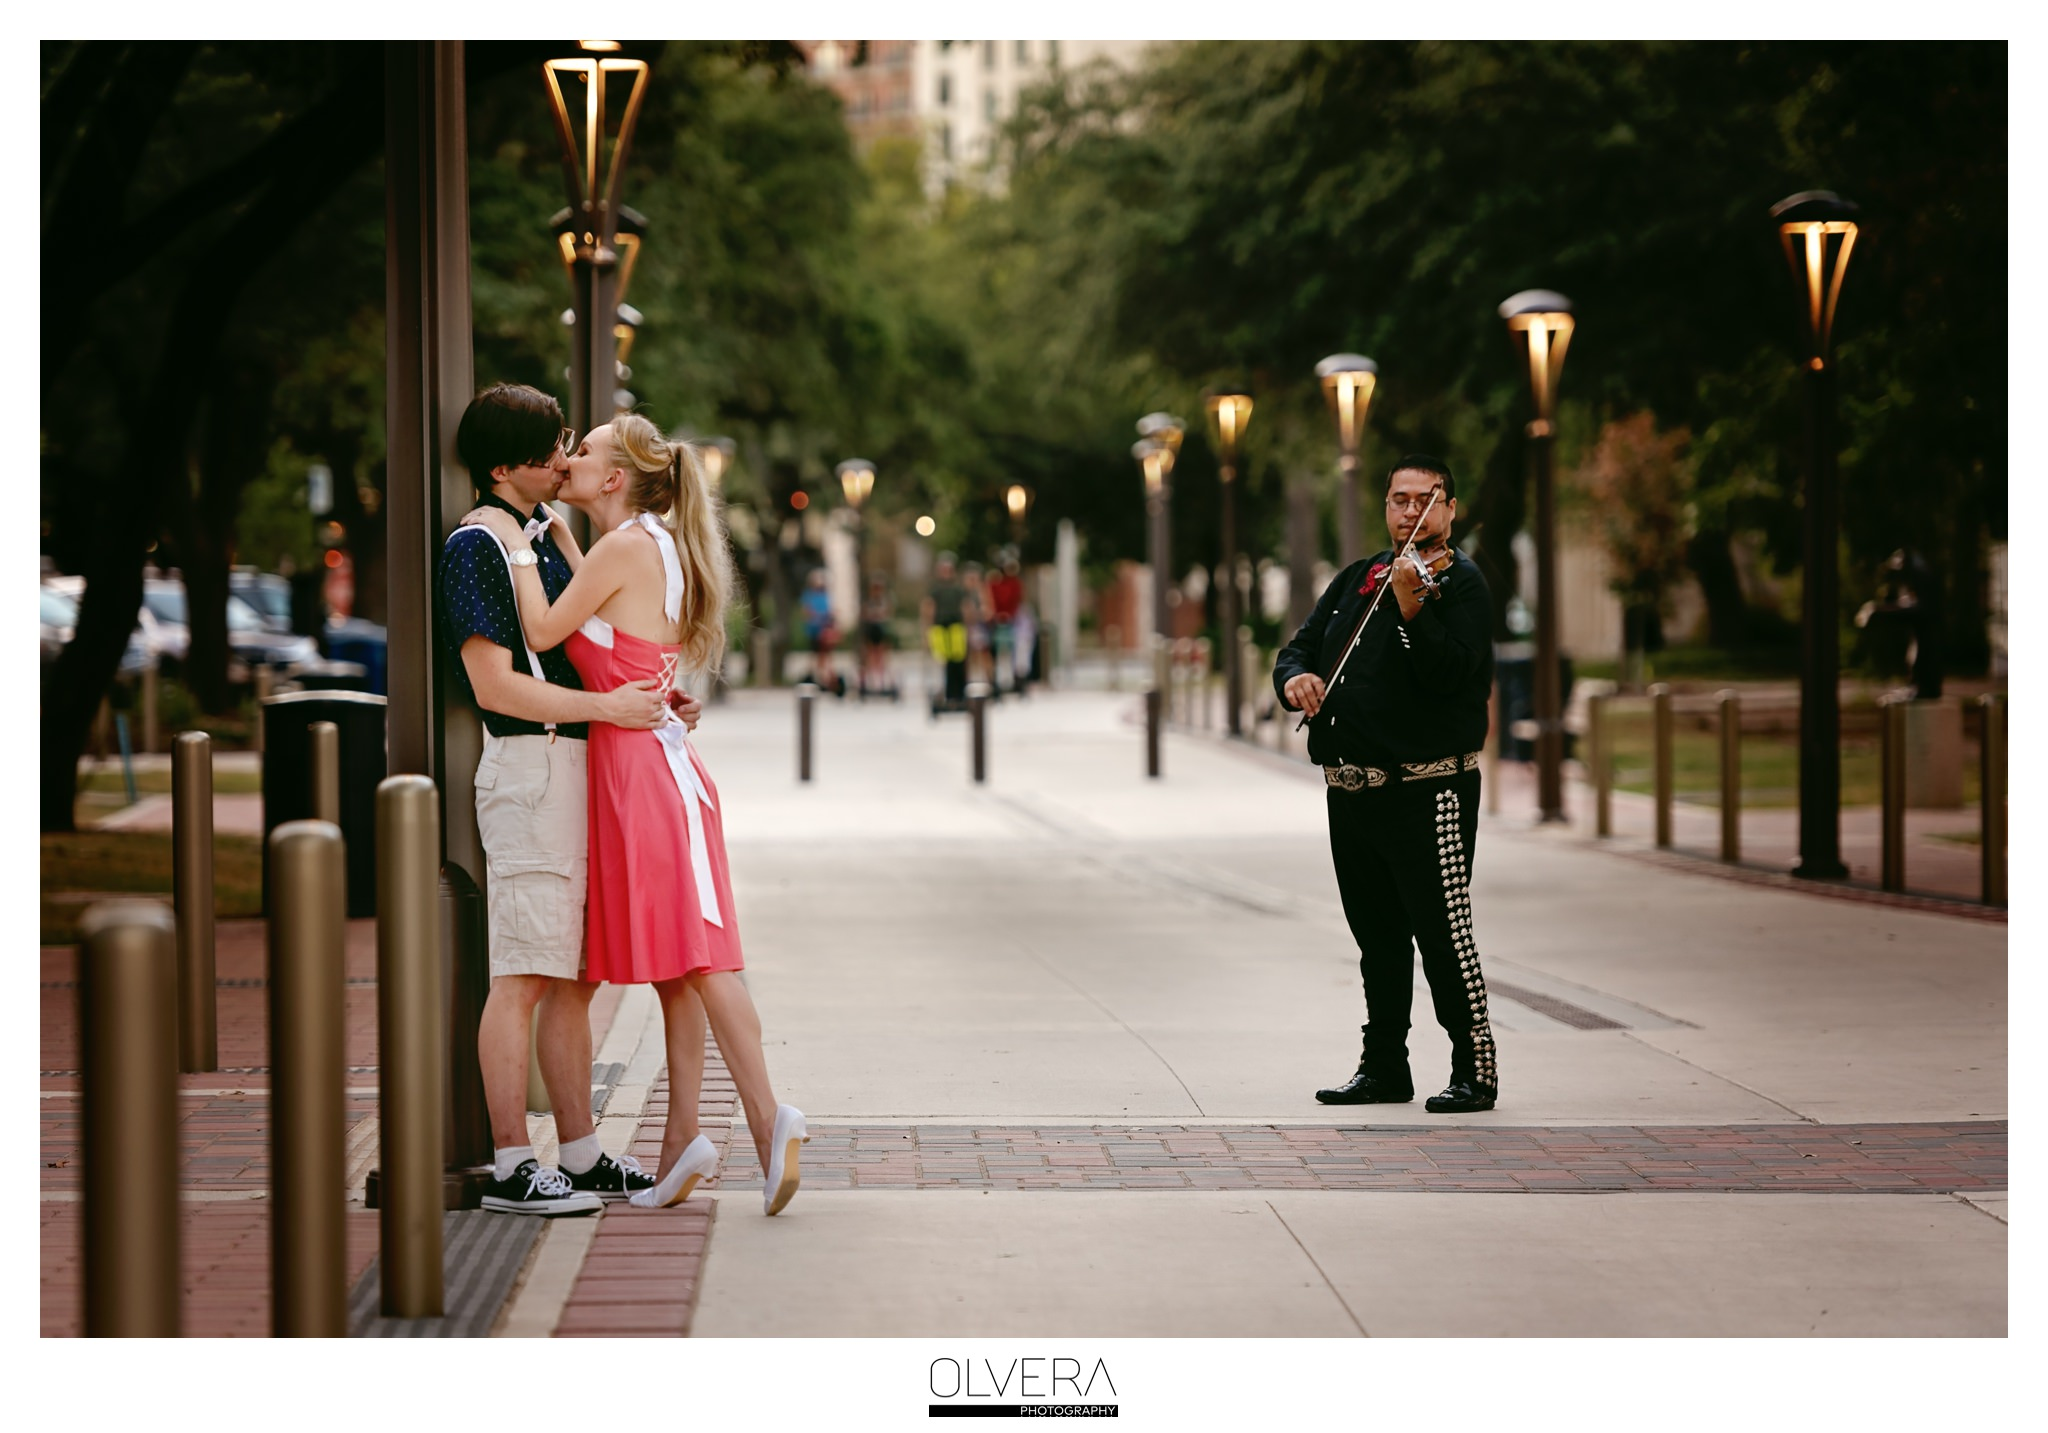 Engagement Portraits | Hemisfair Park | San Antonio, TX.